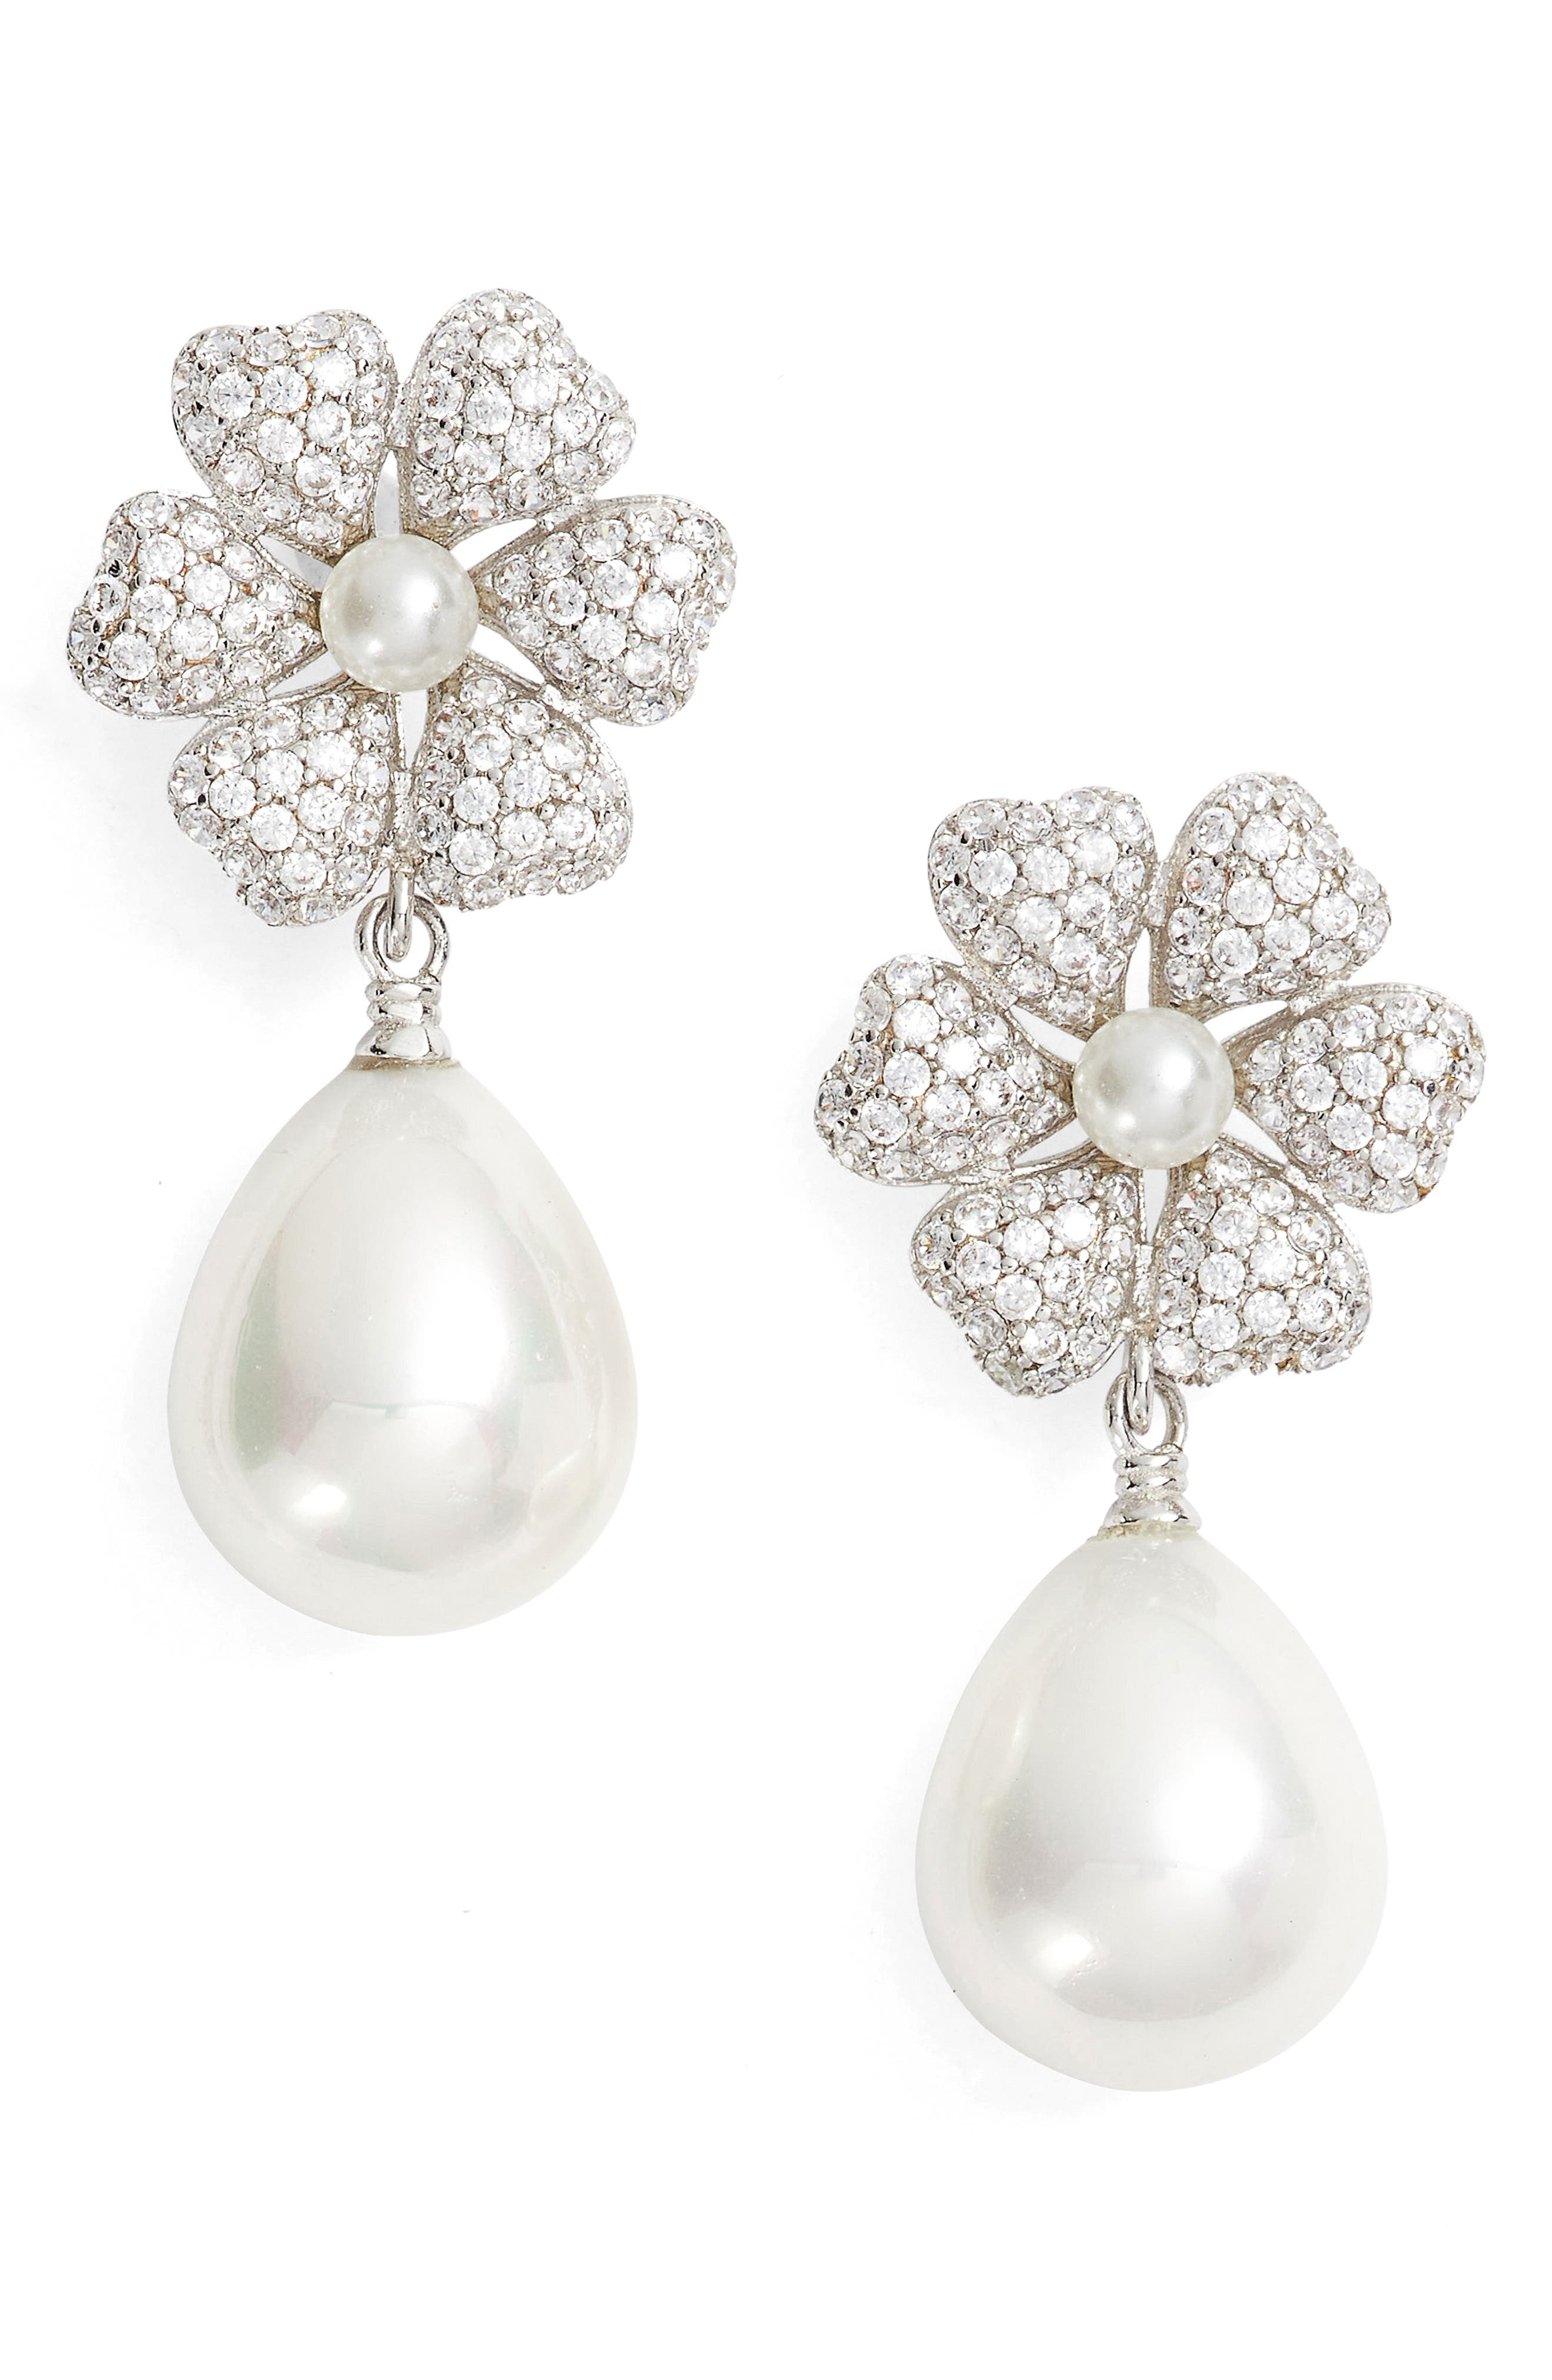 Imitation Pearl & Crystal Drop Earrings,                             Main thumbnail 1, color,